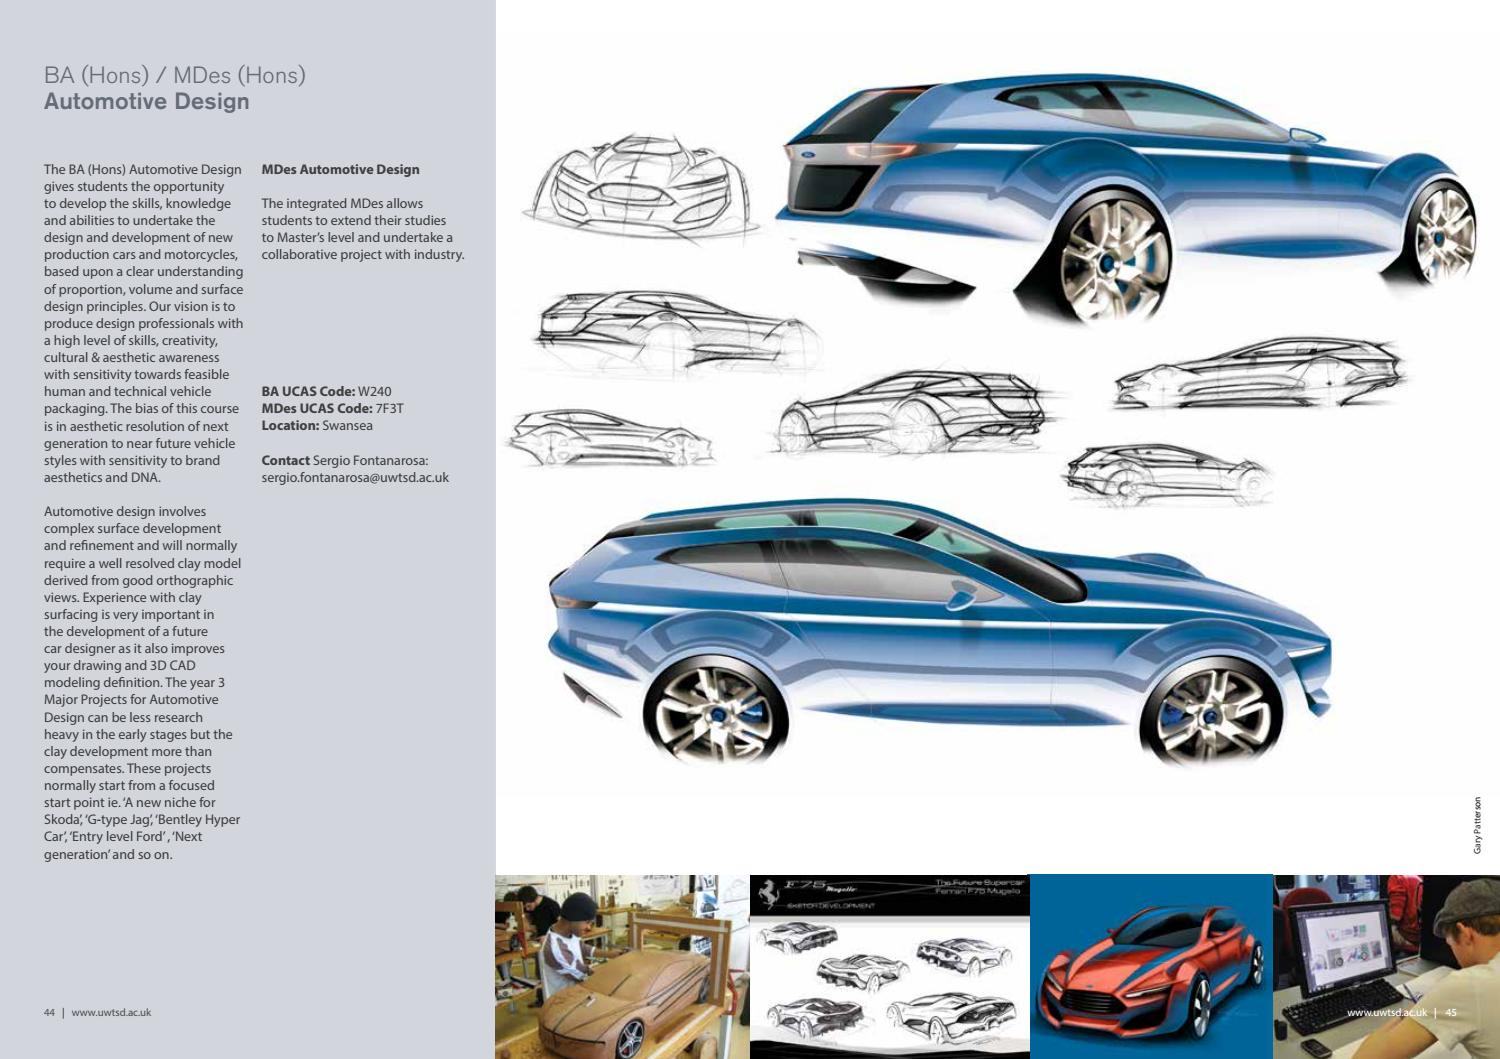 Product Automotive Transport Design By University Of Wales Trinity Saint David Issuu